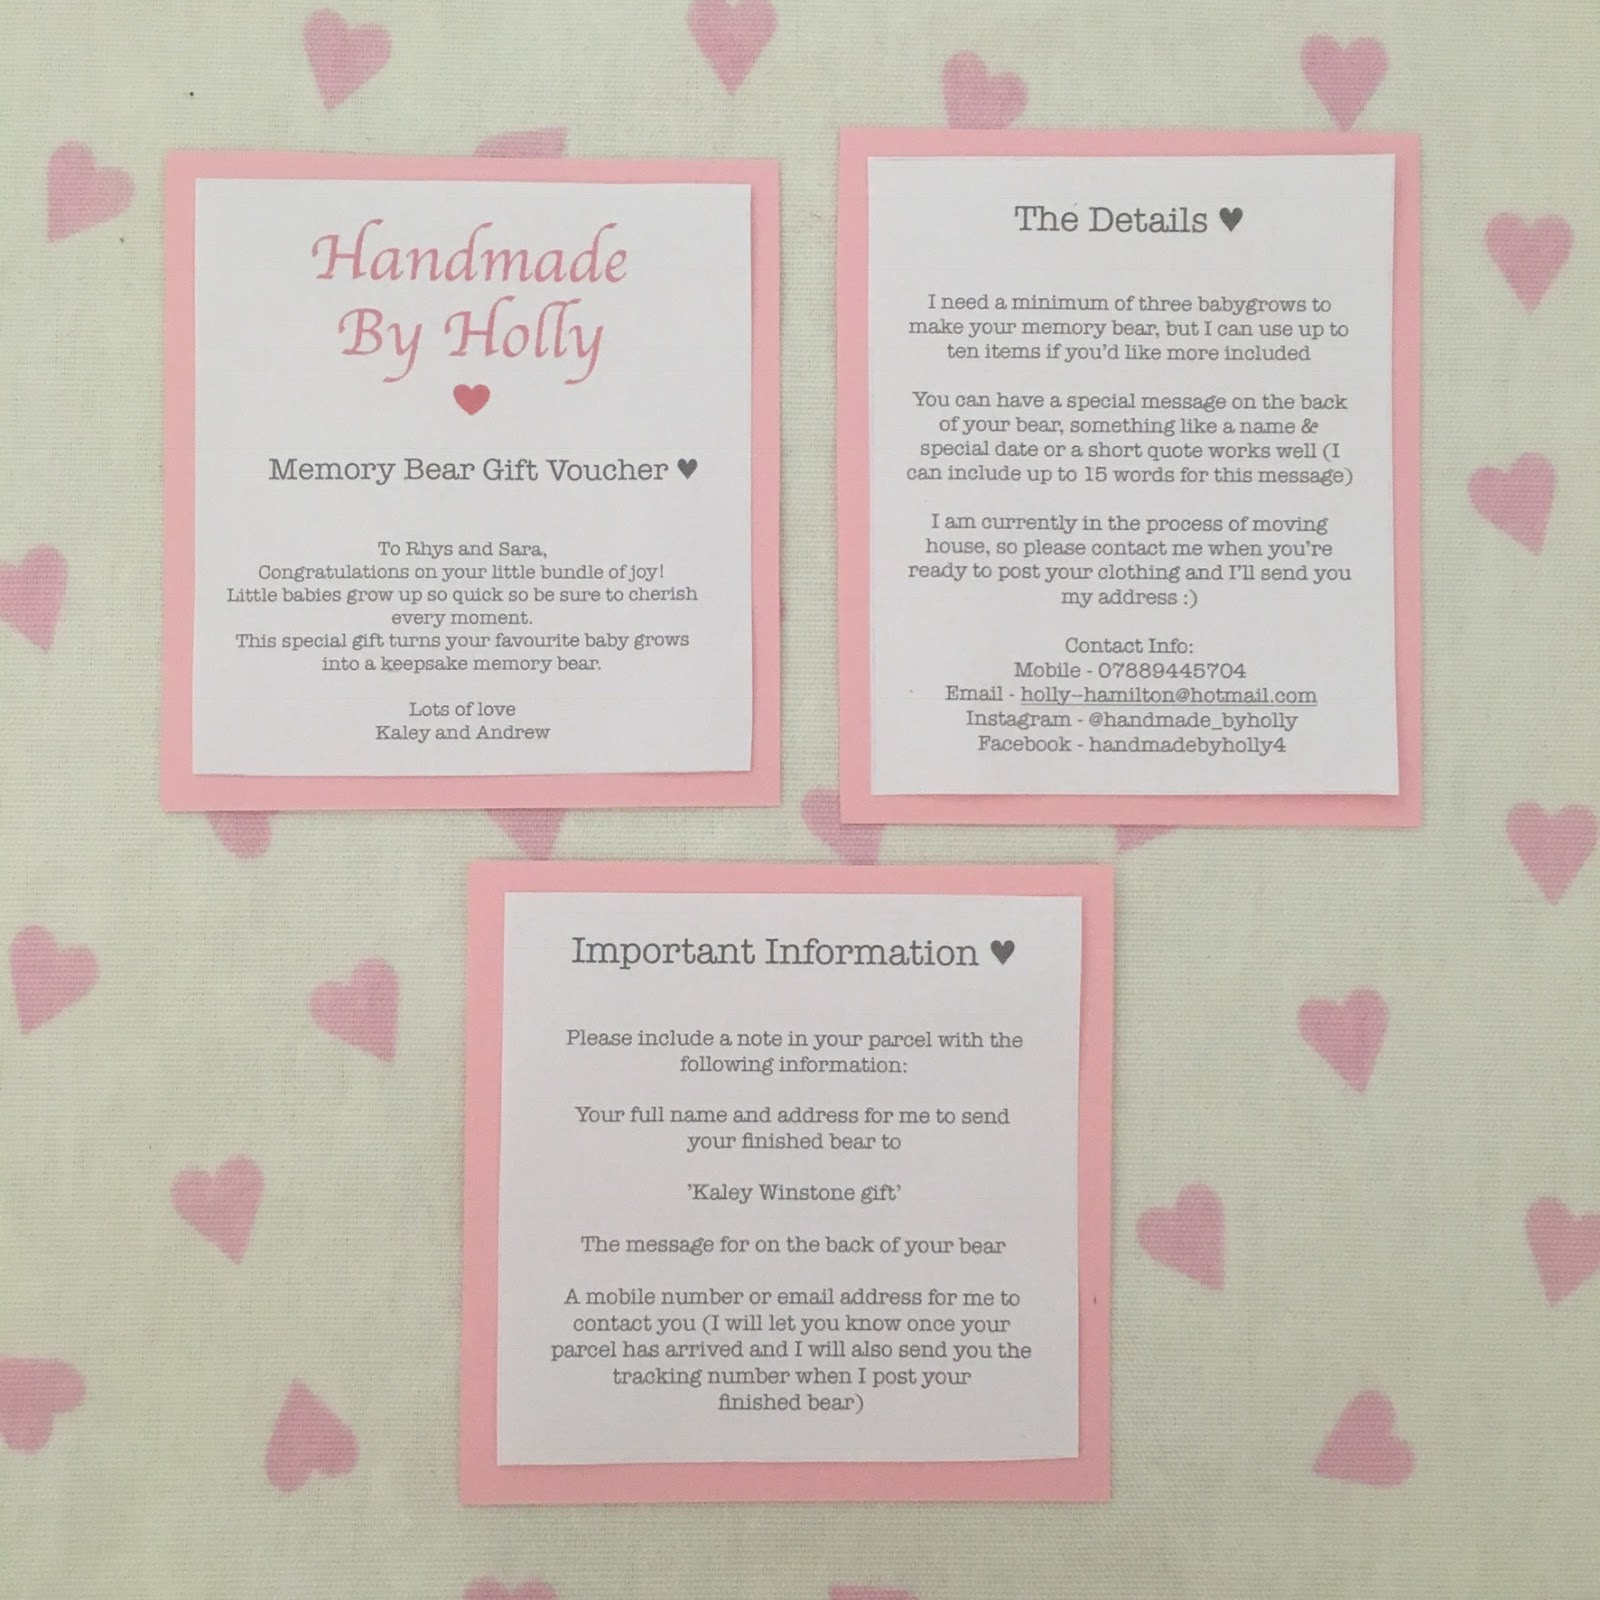 Memory Bear Gift Voucher £30 | Handmade by Holly